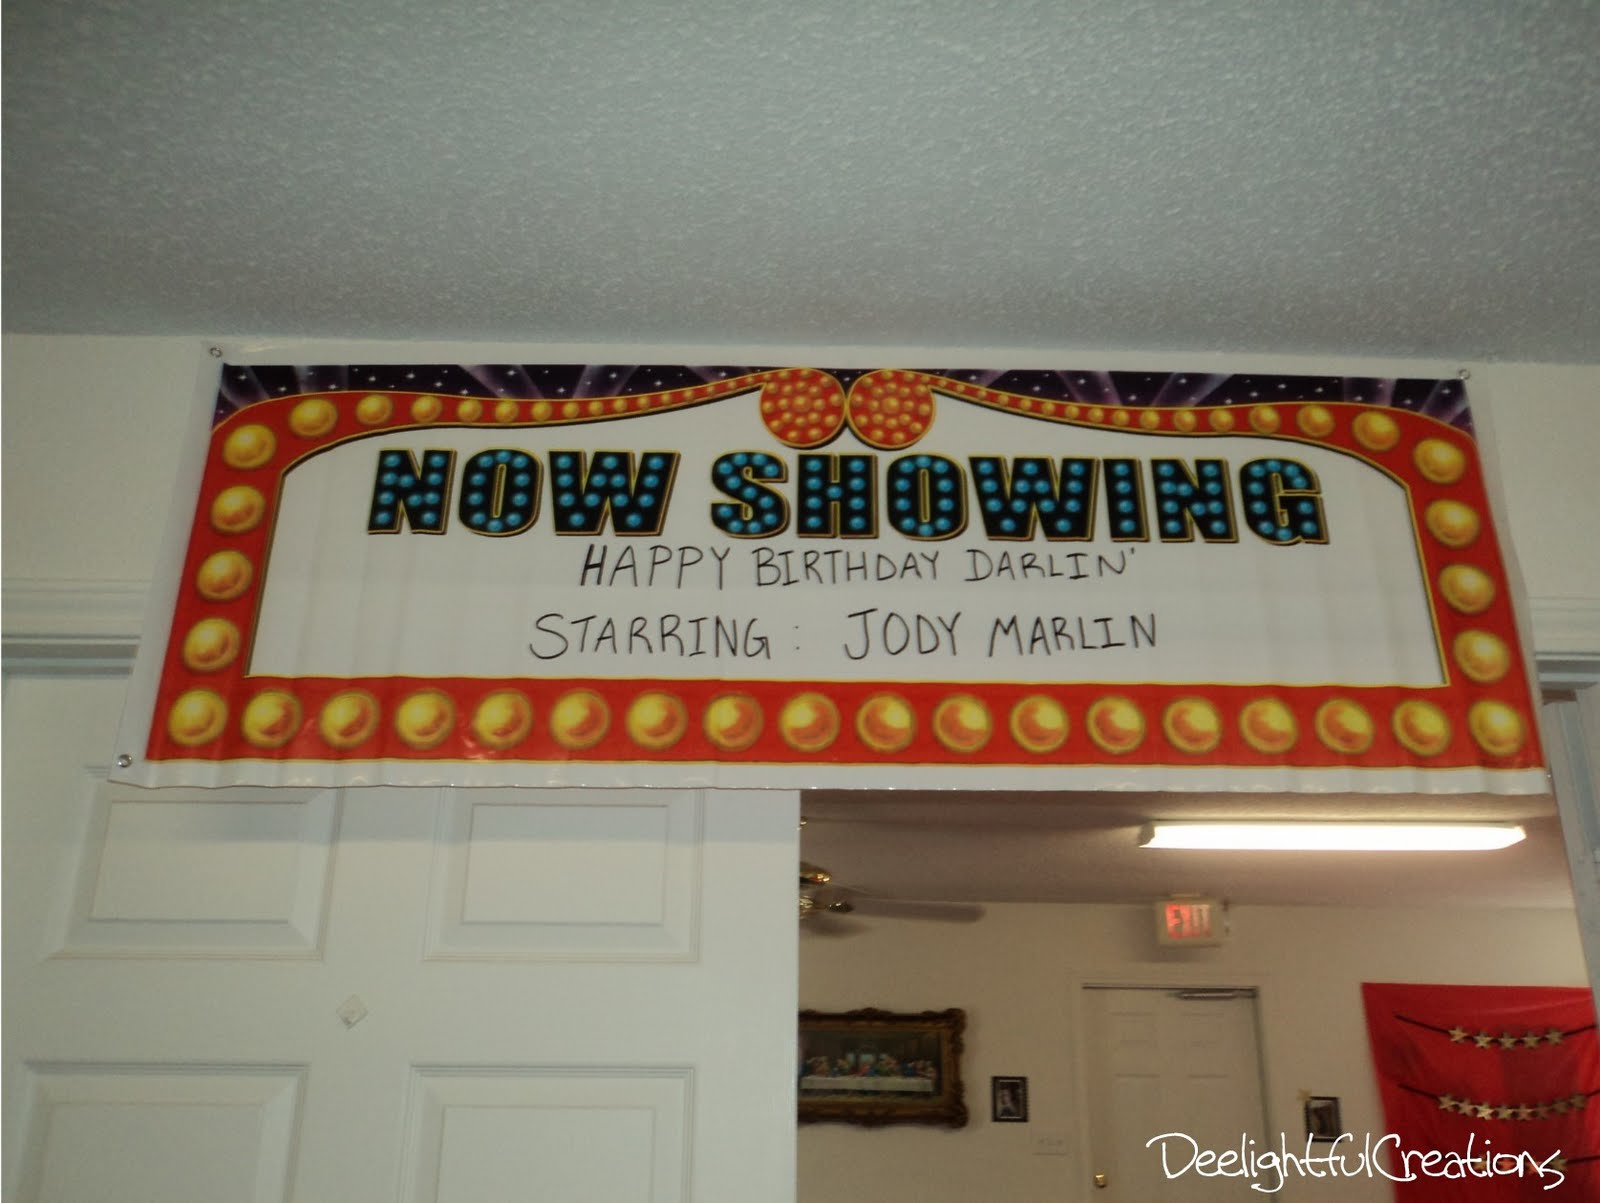 Deeliteful Creations Now Showing Movie Themed Birthday Party